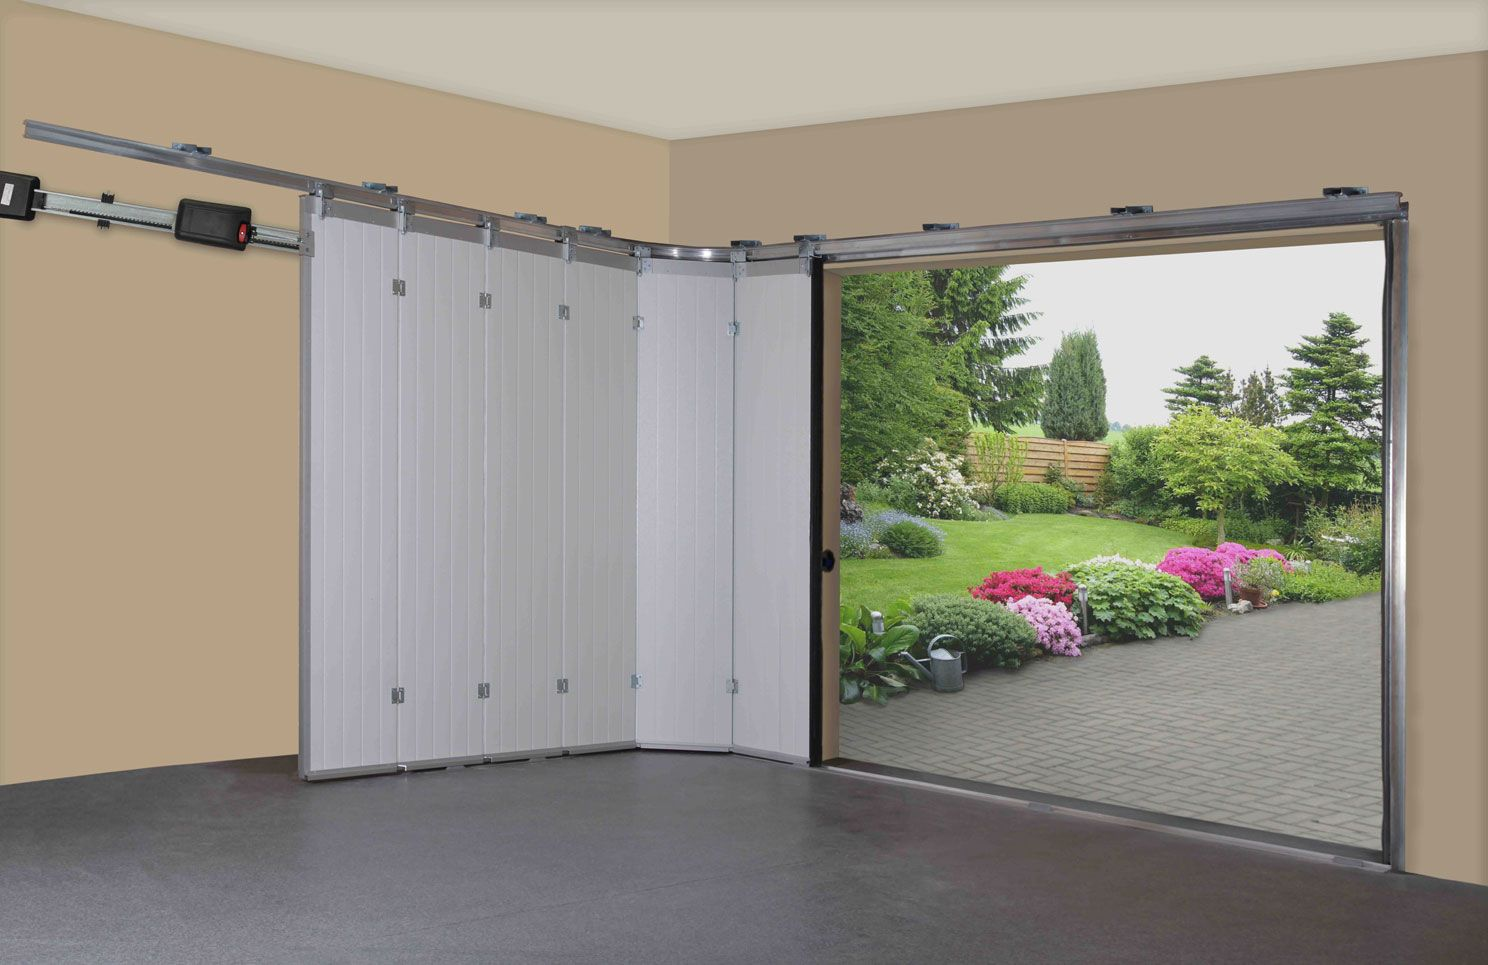 Sliding garage doors making faster to access your garage for Garage doors designs